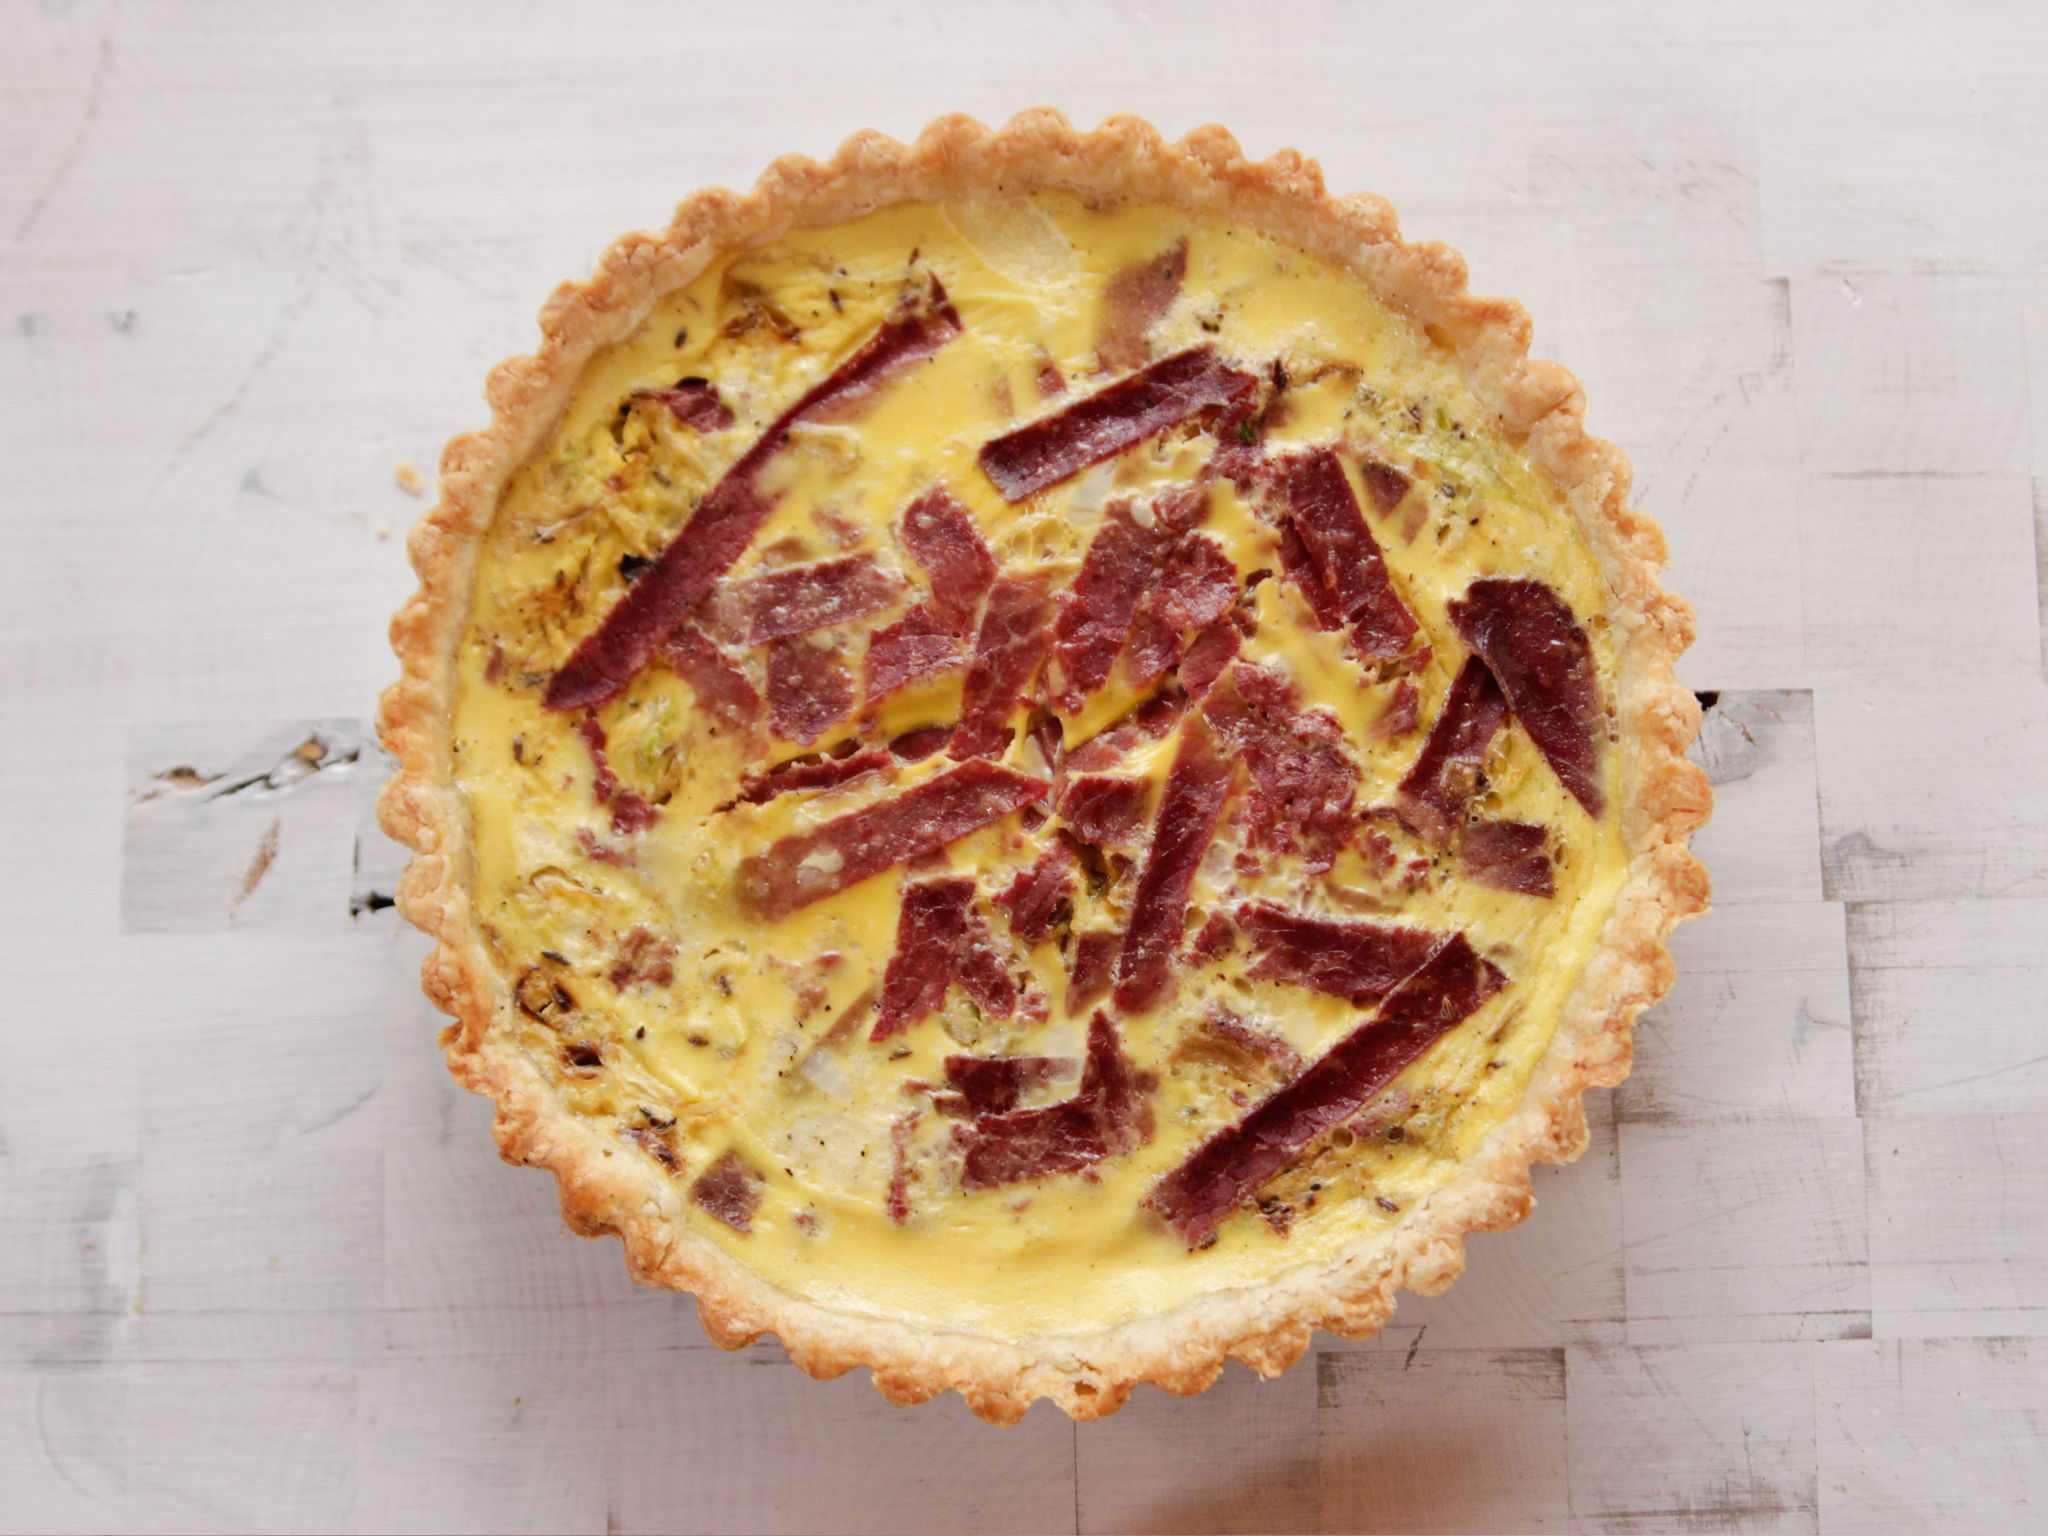 Corned beef and cabbage quiche recipe quiche recipes quiches corned beef and cabbage quiche recipe quiche recipes quiches and cabbage forumfinder